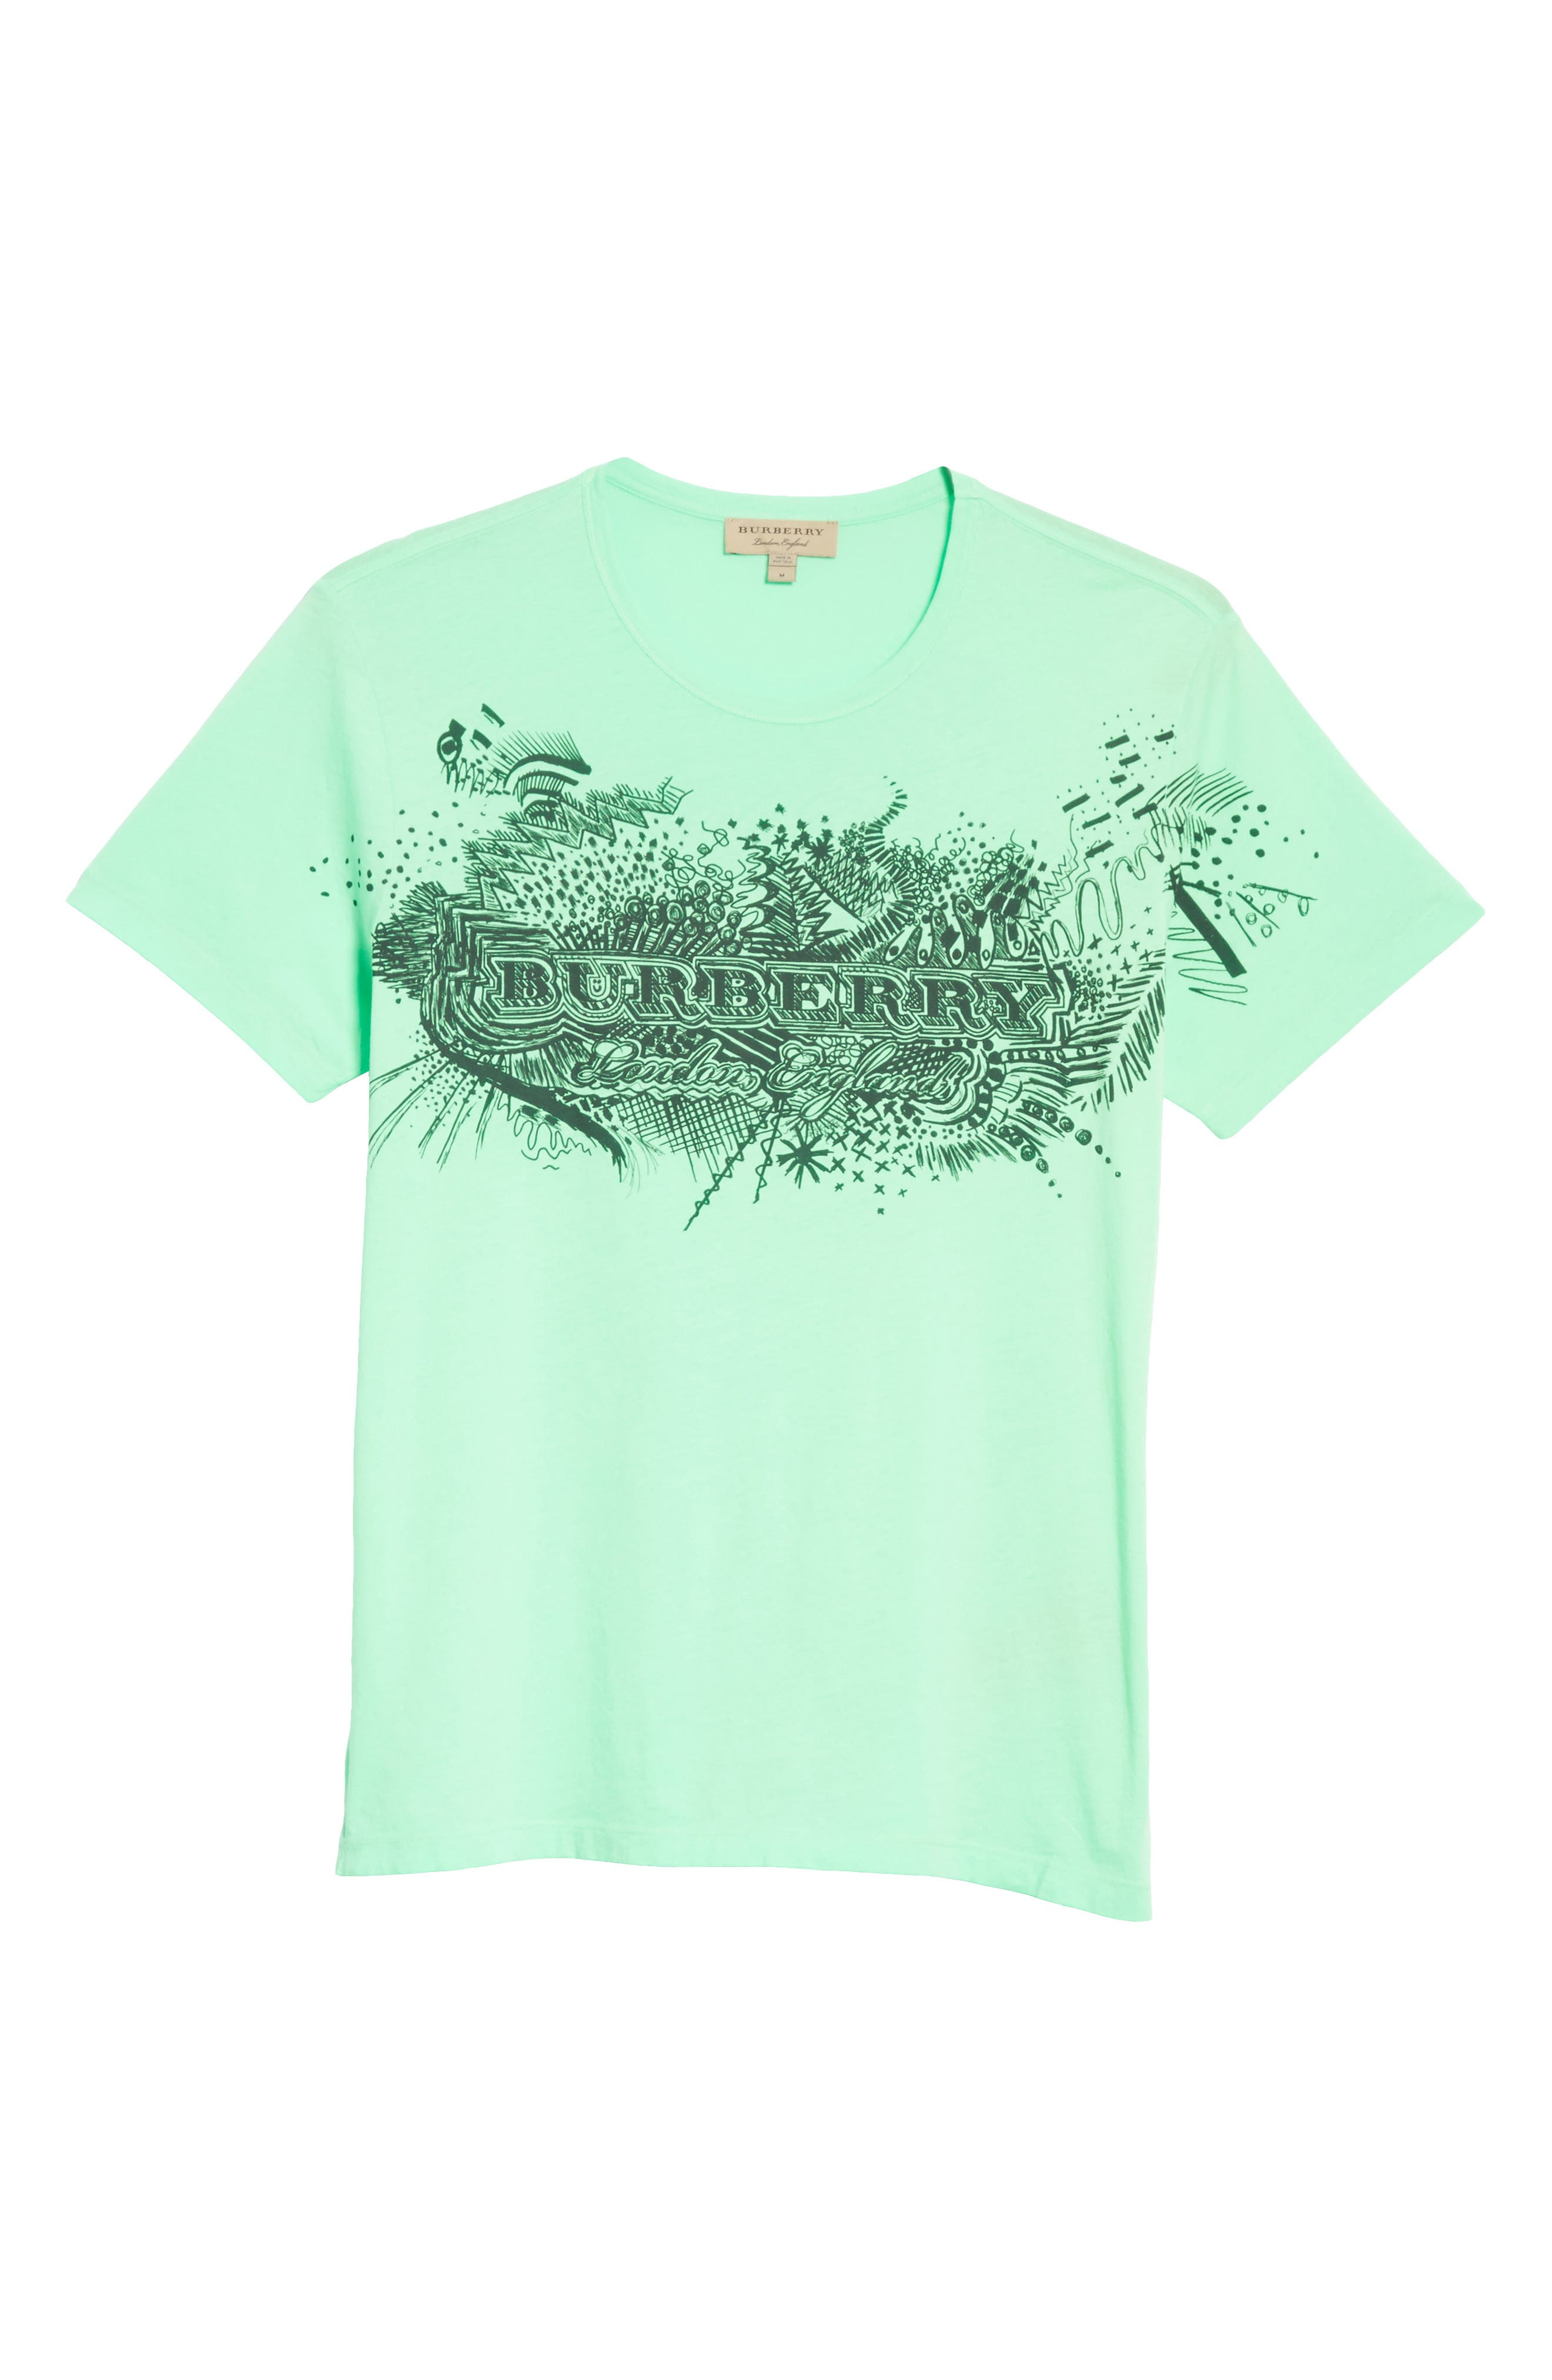 M Biles Standard Fit Graphic Tee,                             Alternate thumbnail 6, color,                             Bright Apple Green